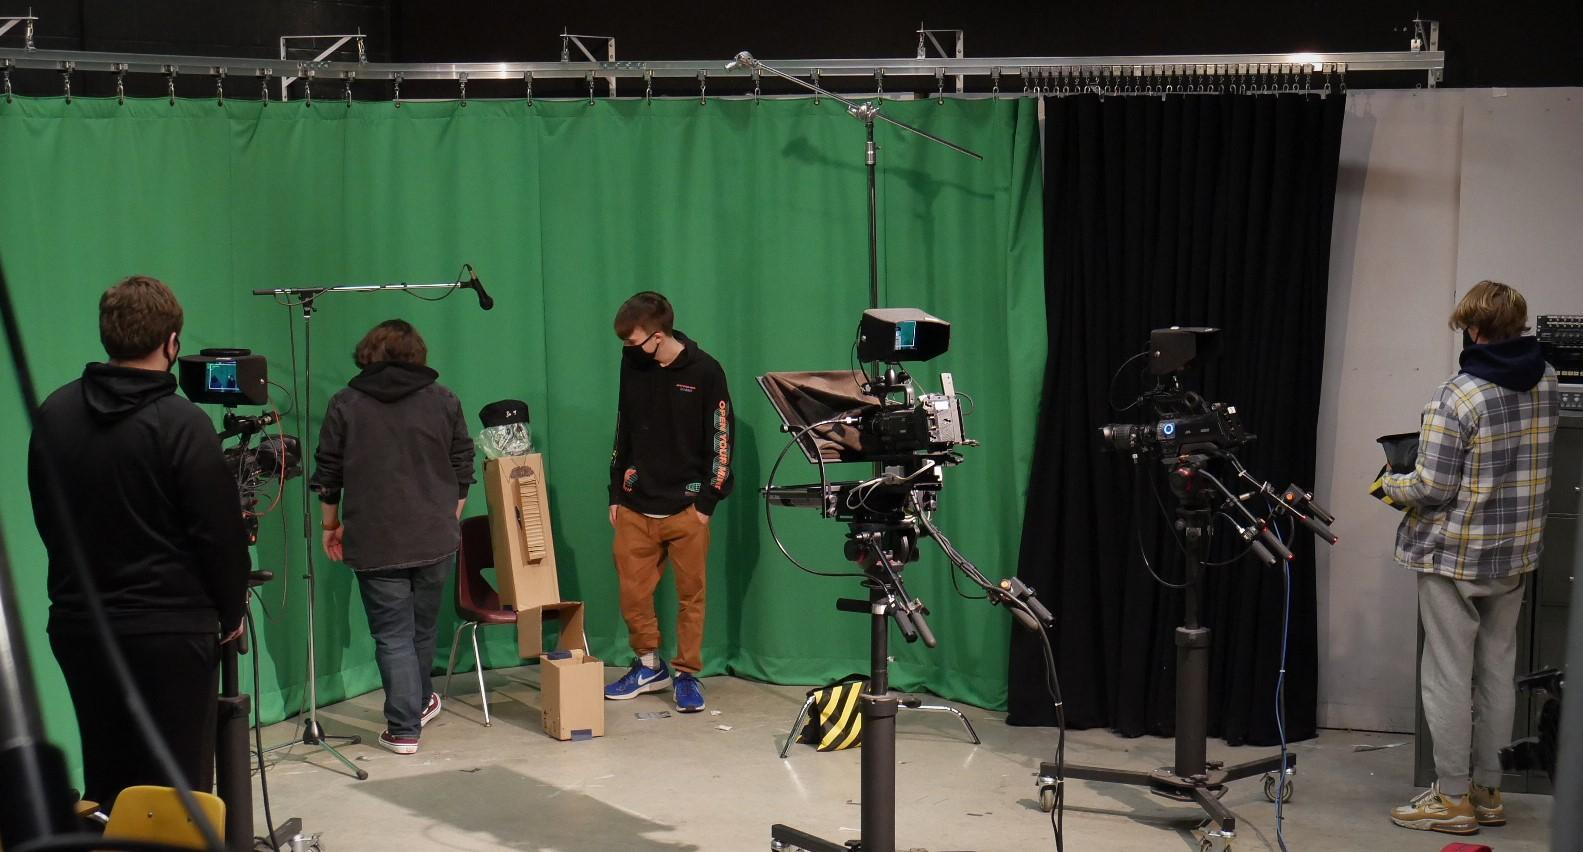 masked students working on green screen filming